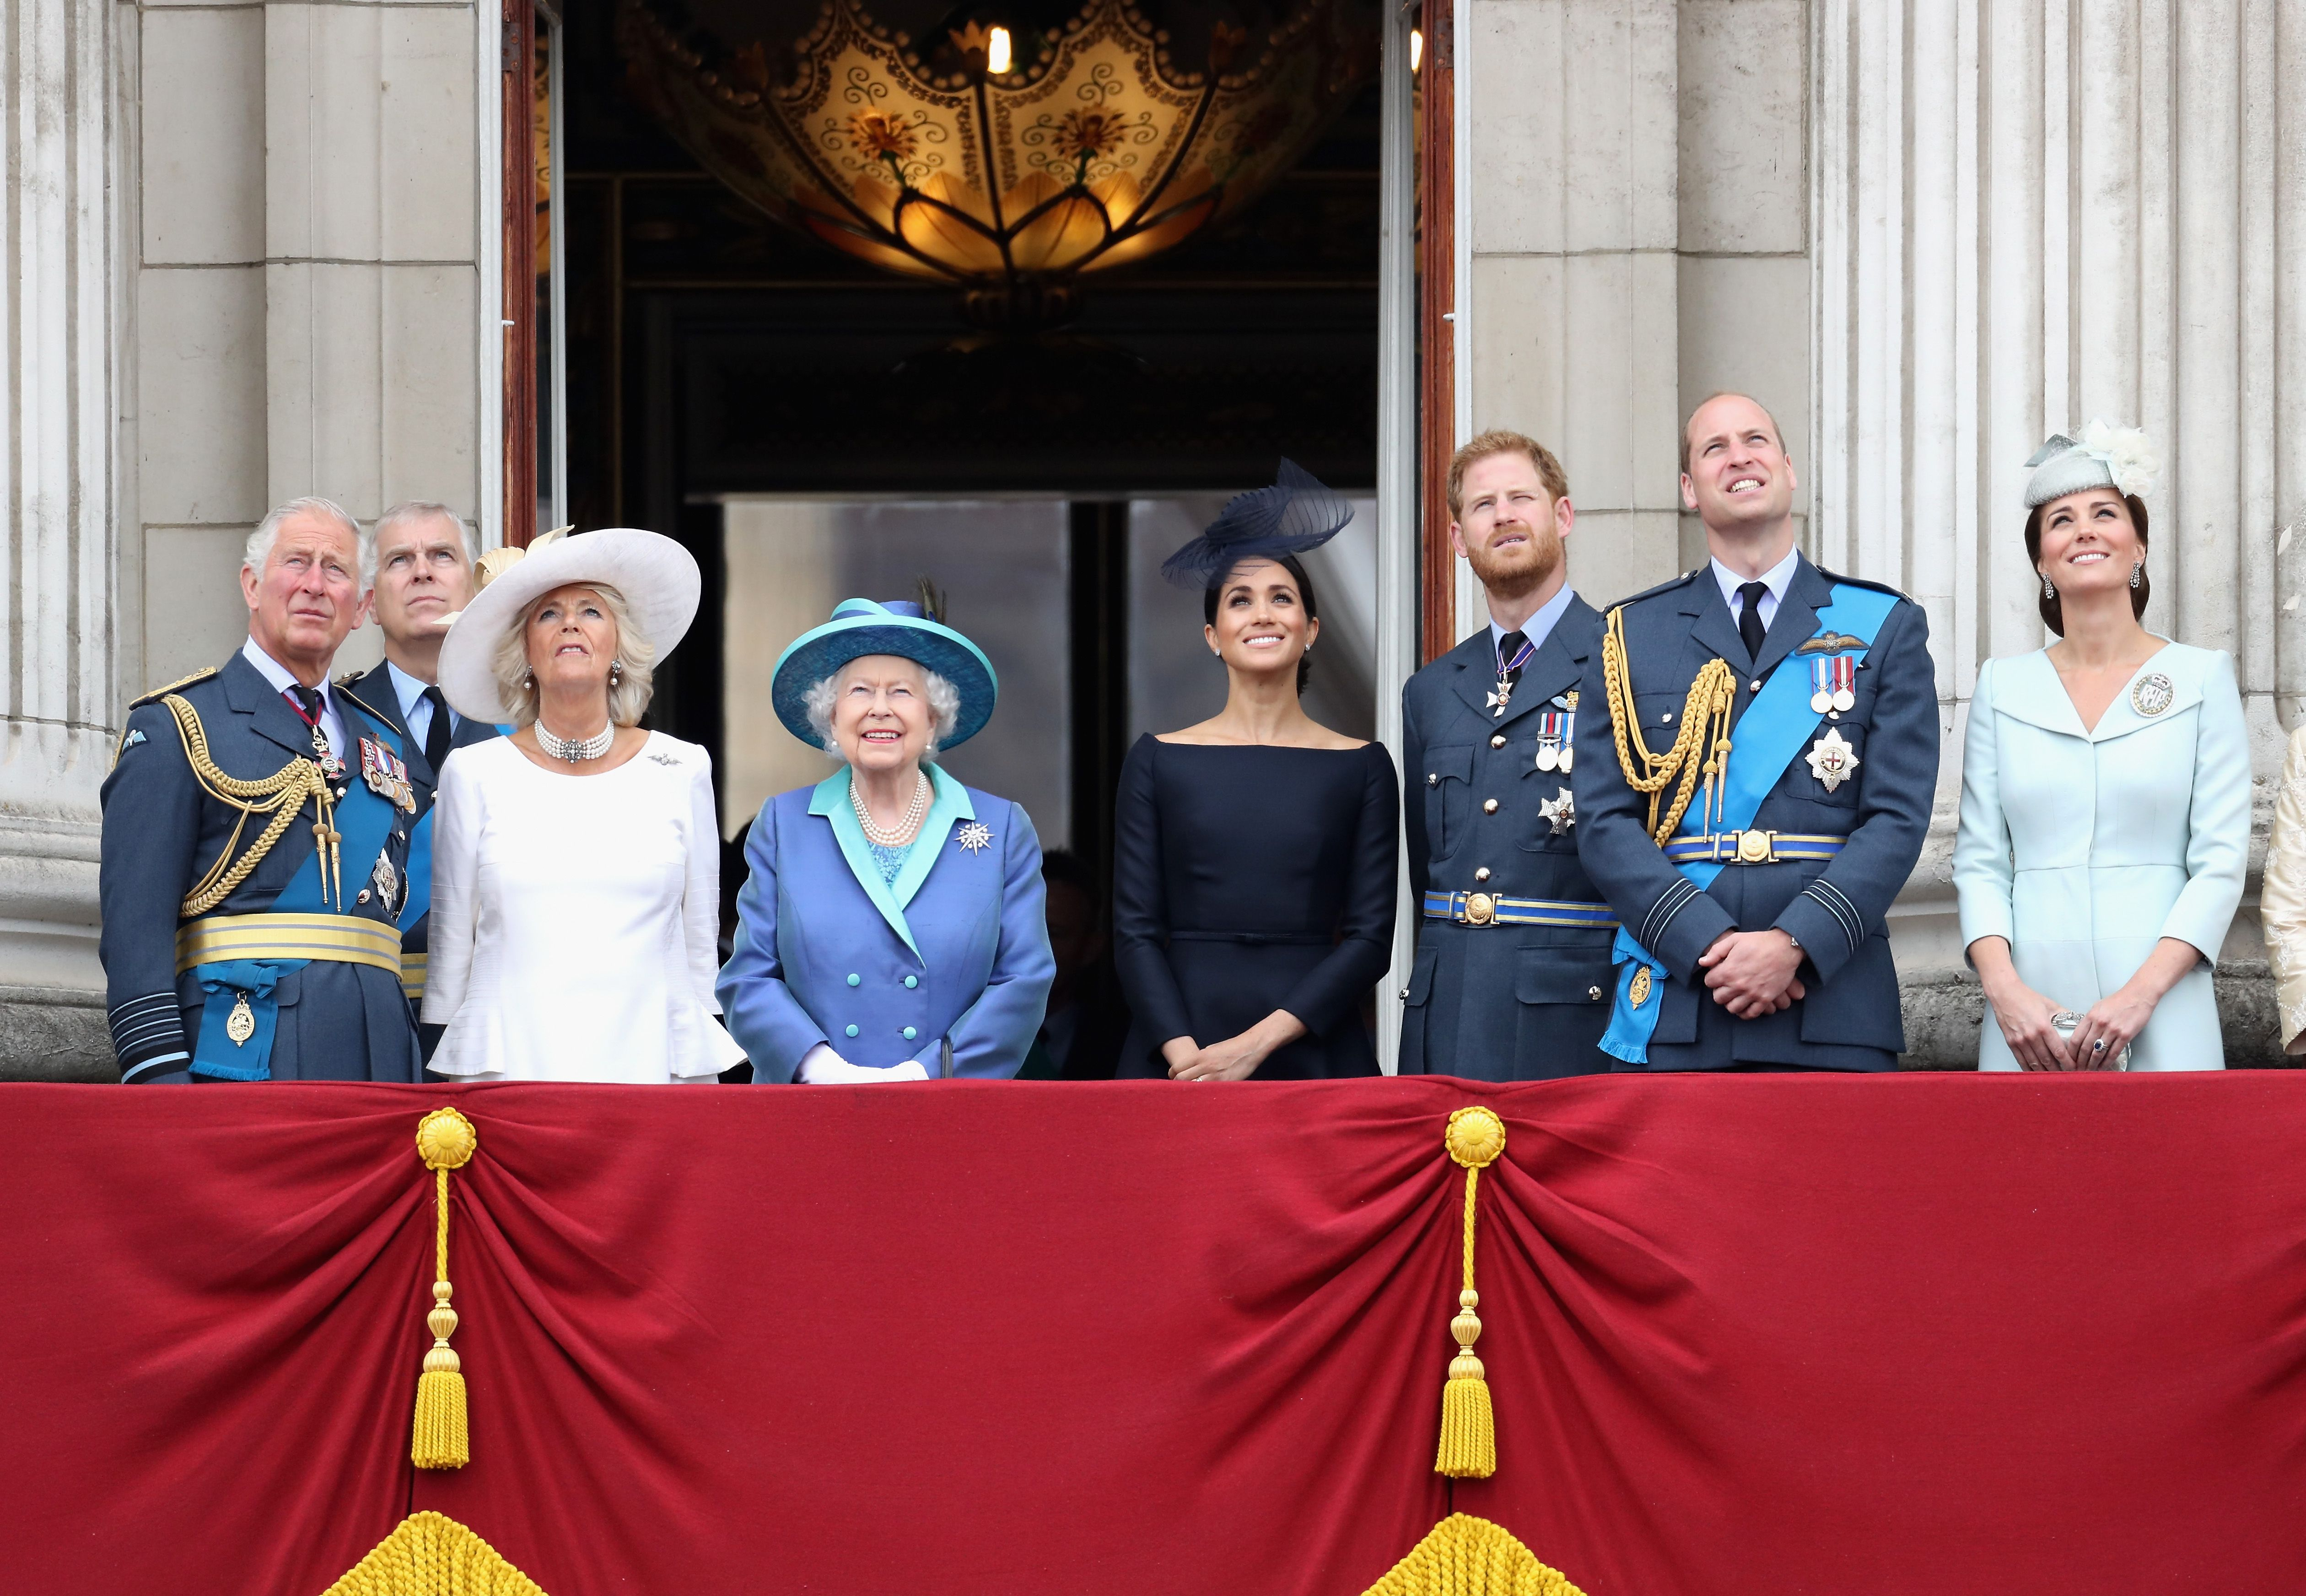 Queen Elizabeth II and other senior members of the royal family watched the RAF flypast on the balcony of Buckingham Palace on July 10, 2018 | Photo: Getty Images